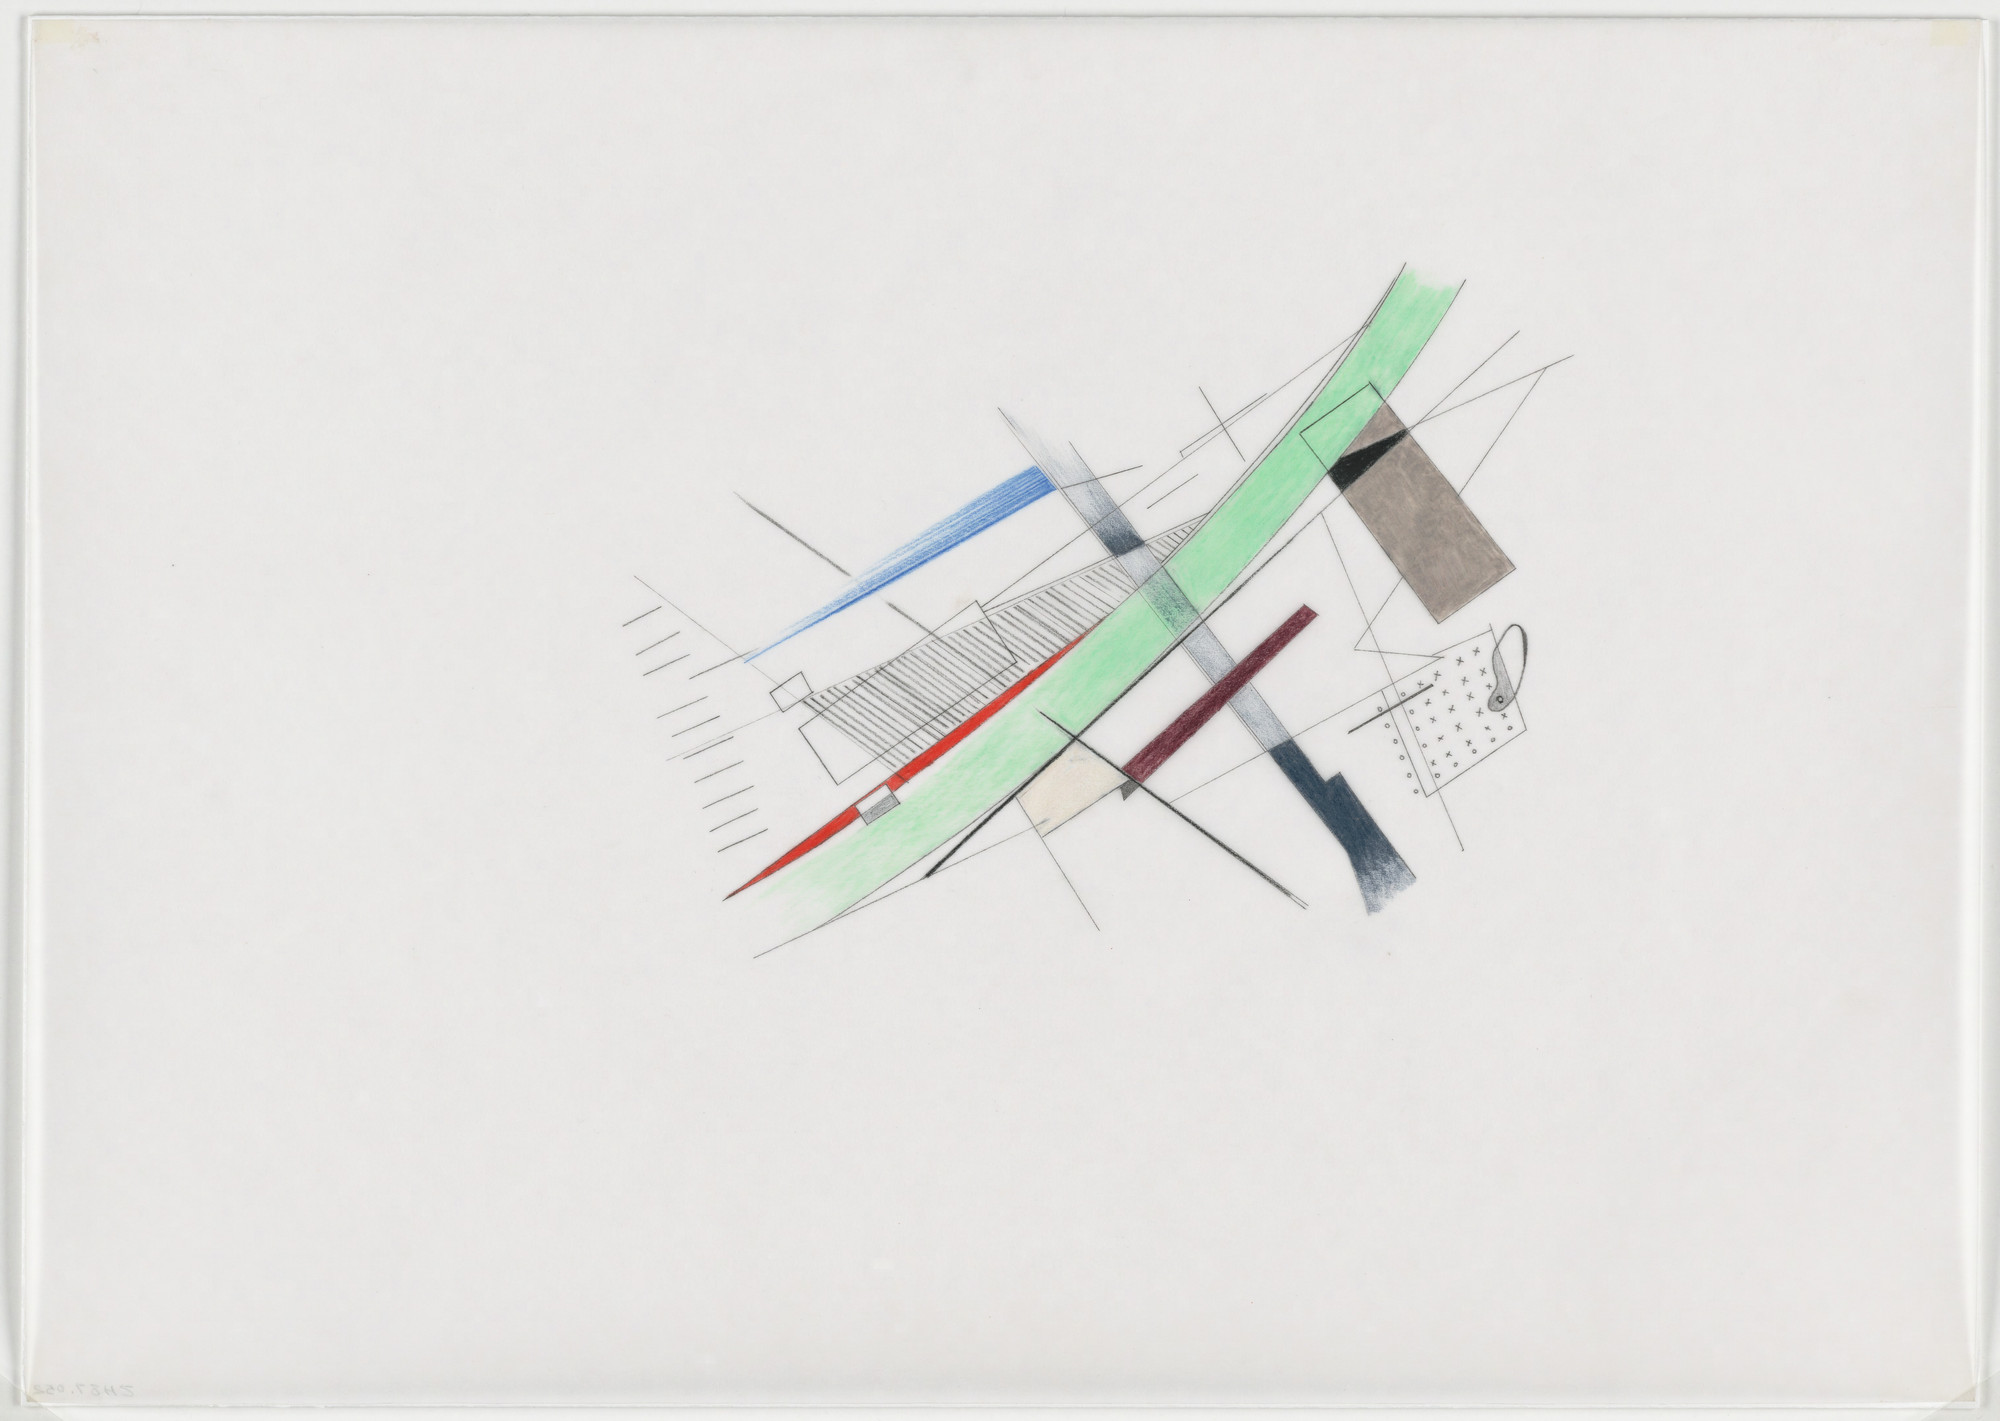 Zaha Hadid. Parc de la Villette Project, Paris, France (Plot breakdown). 1982-83